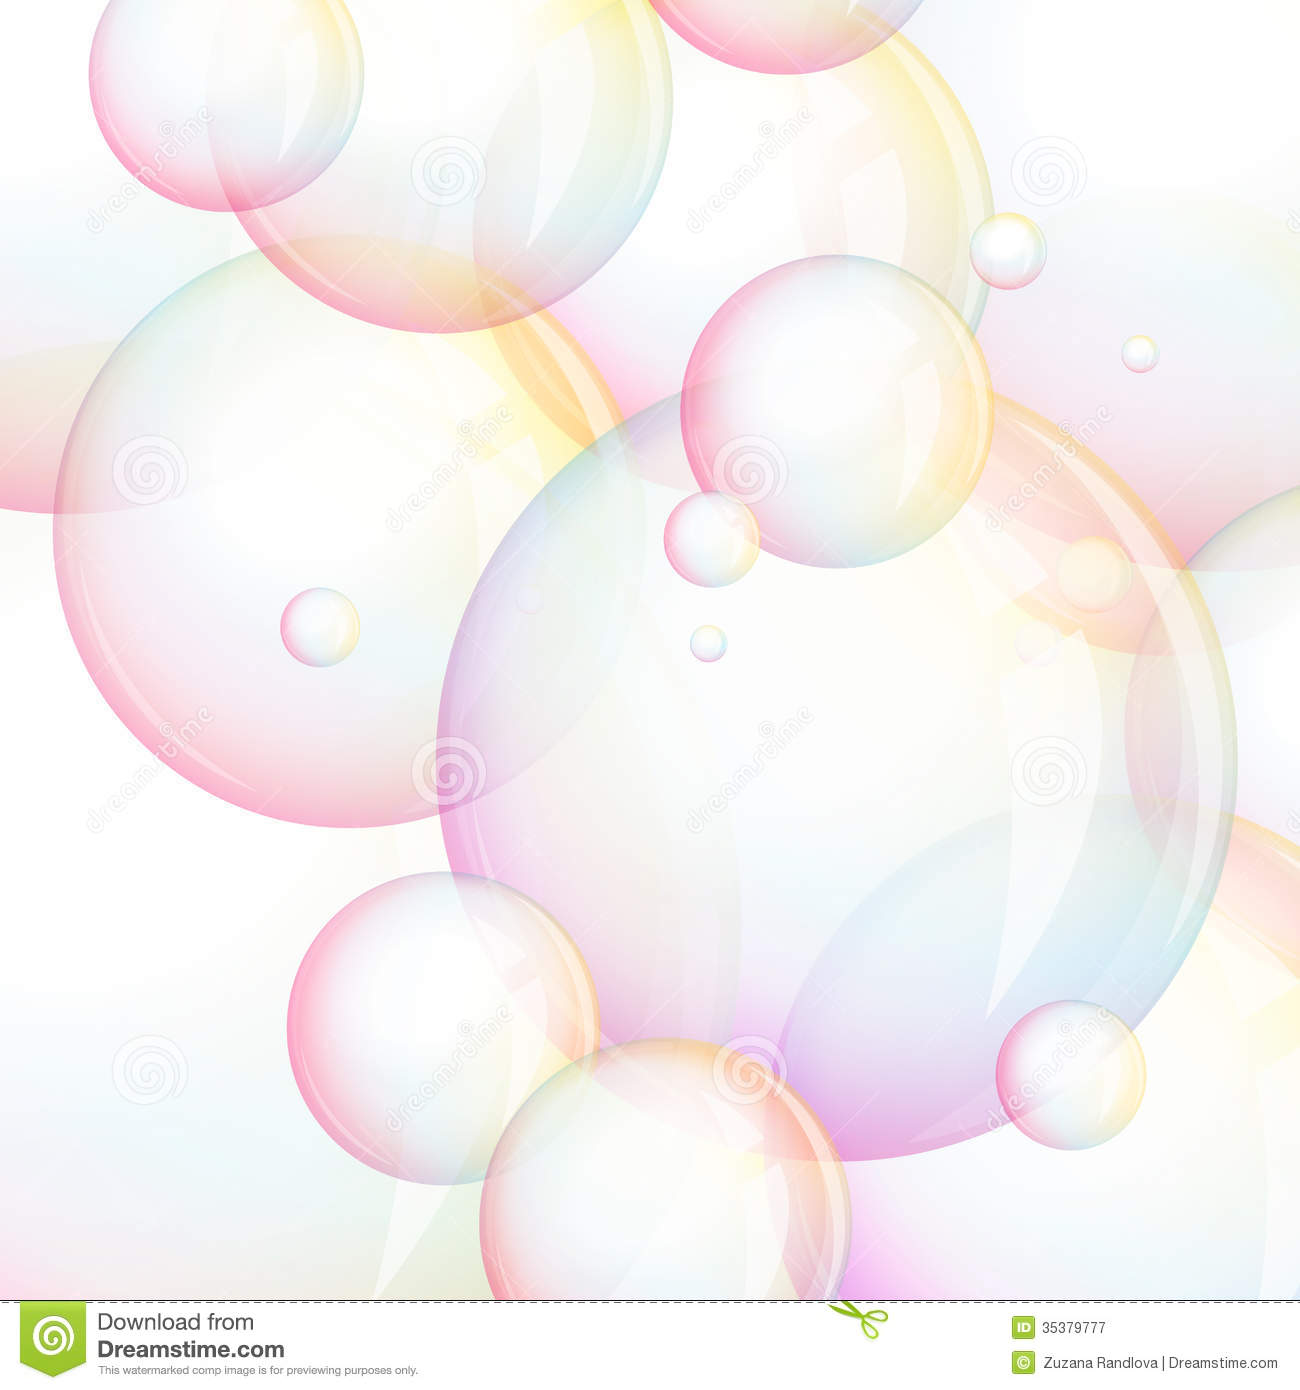 Soap bubble background download free vector art stock graphics - Royalty Free Stock Photo